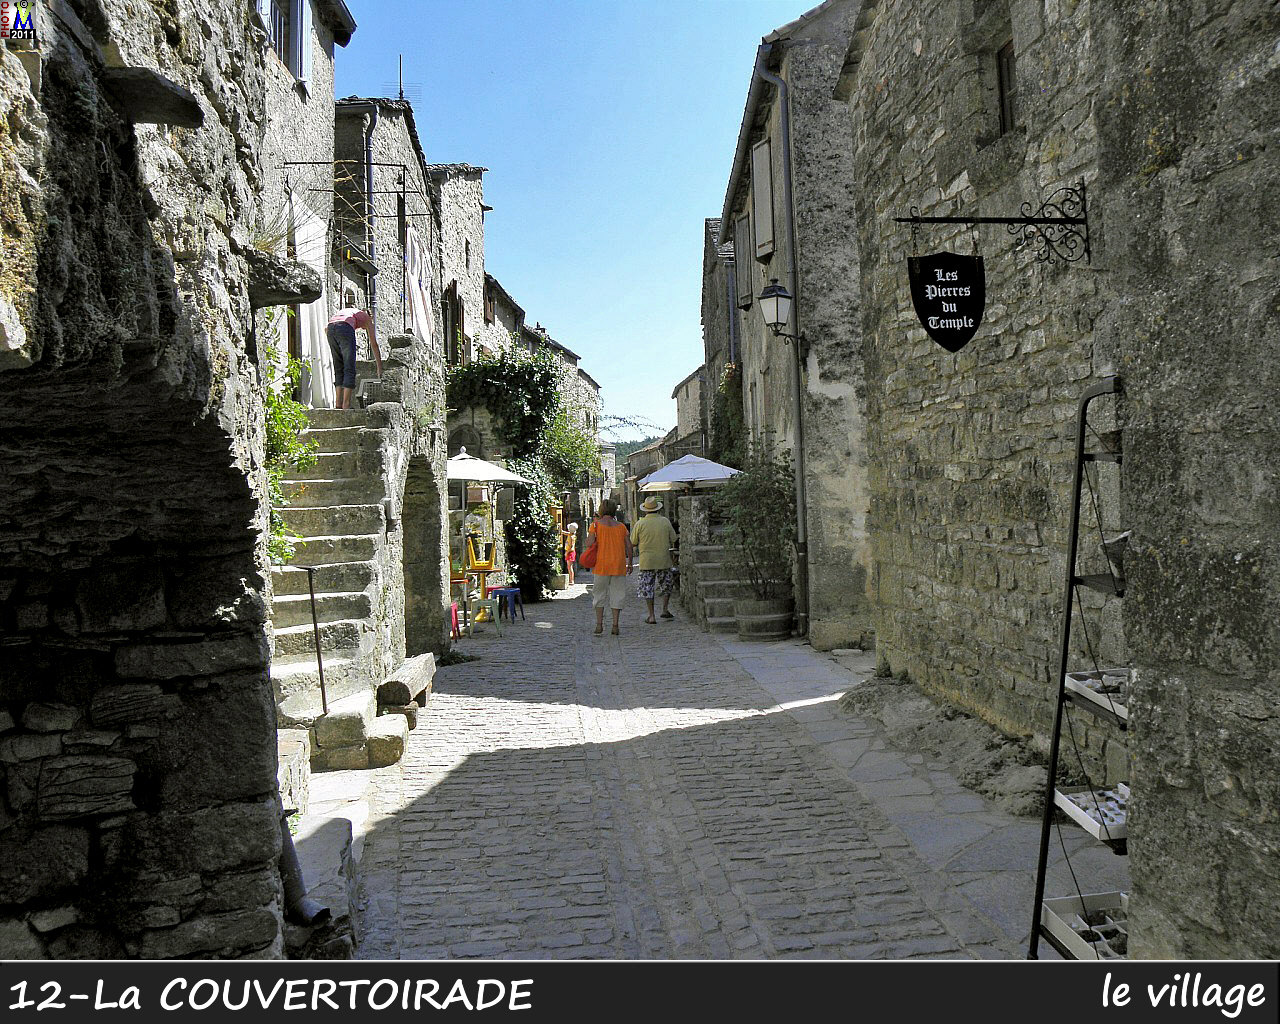 12couvertoirade_village_118.jpg